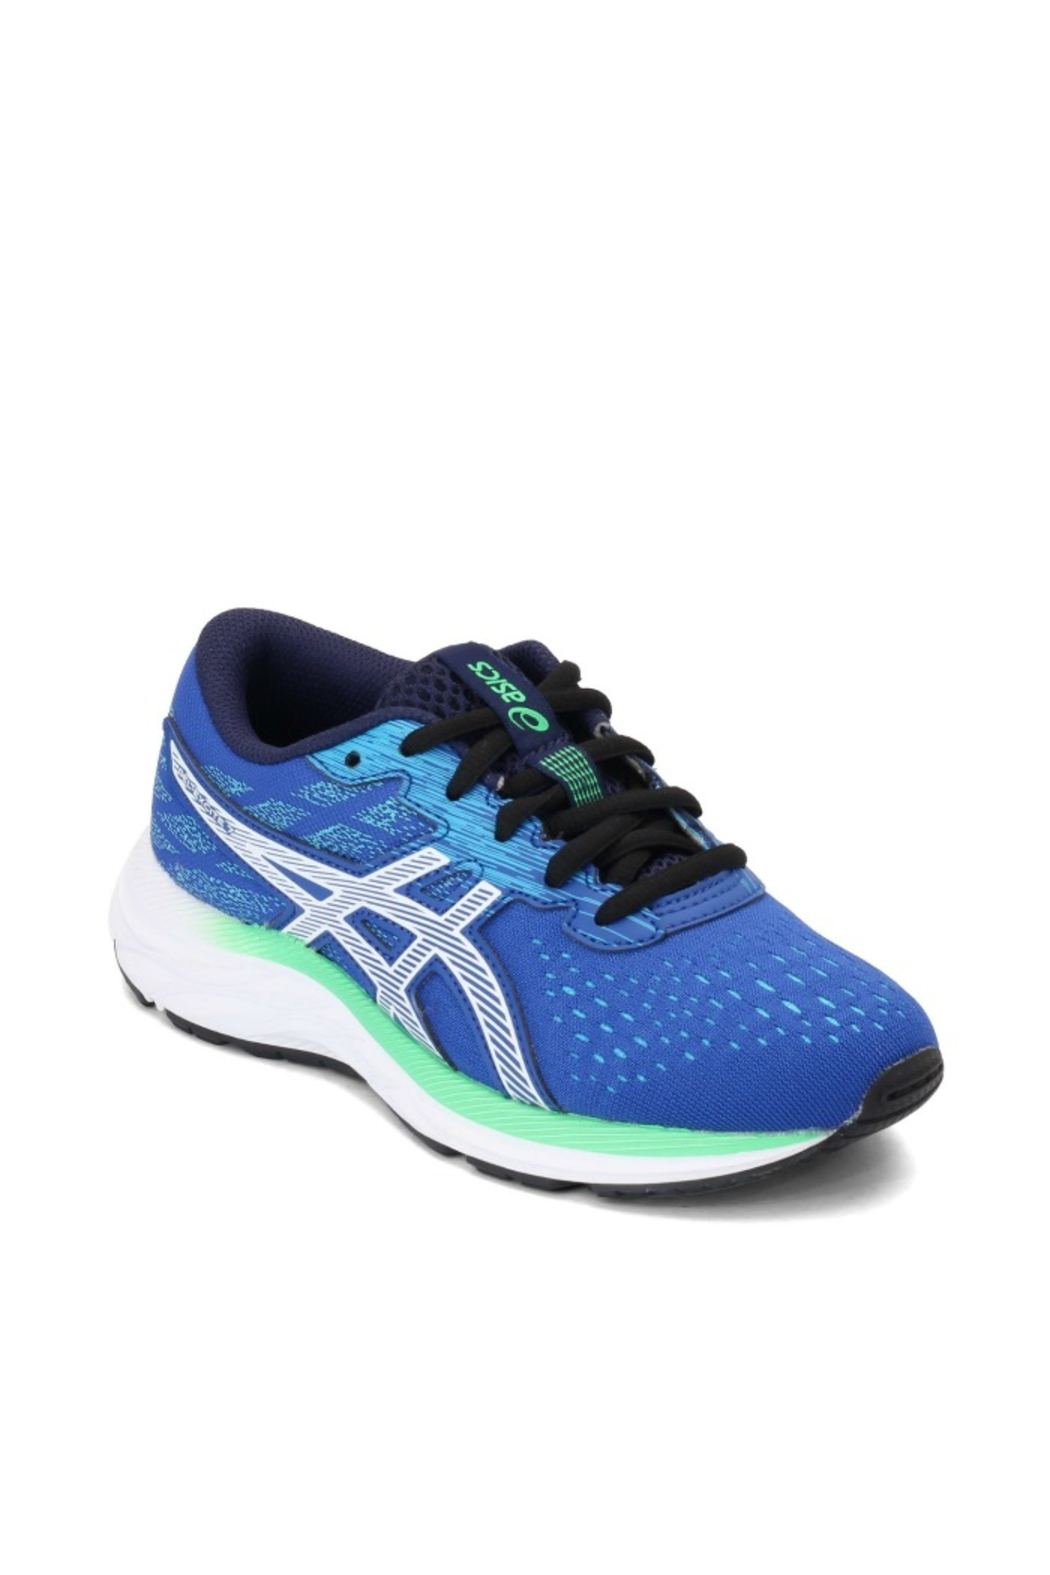 Asics Gel Excite 7 GS in  Blue/ White - Main Image